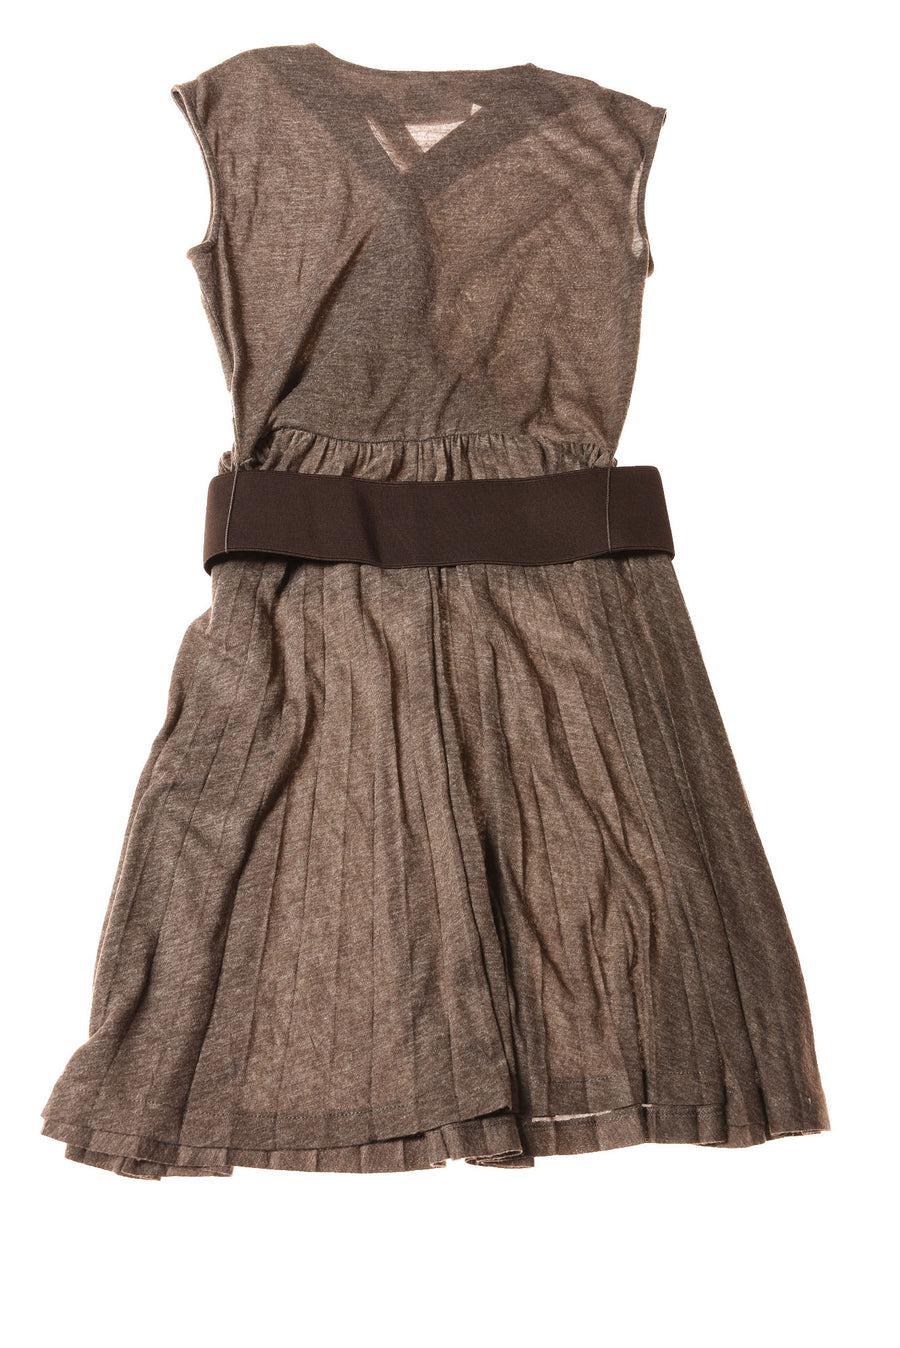 NEW Worthington Women's Dress Medium Dark Brown